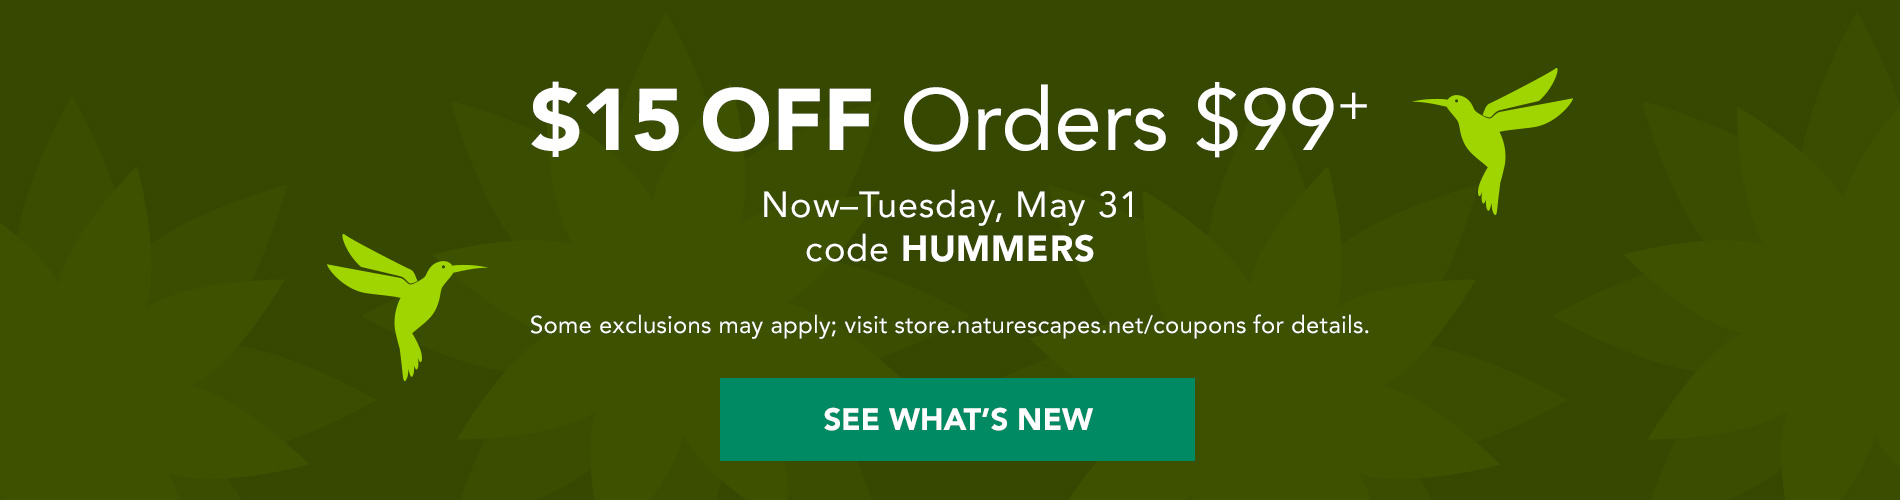 $15 Off Orders $99+ now through Tuesday, May 31. Code HUMMERS. Some exclusions may apply; visit store.naturescapes.net/coupons for details. See What's New →